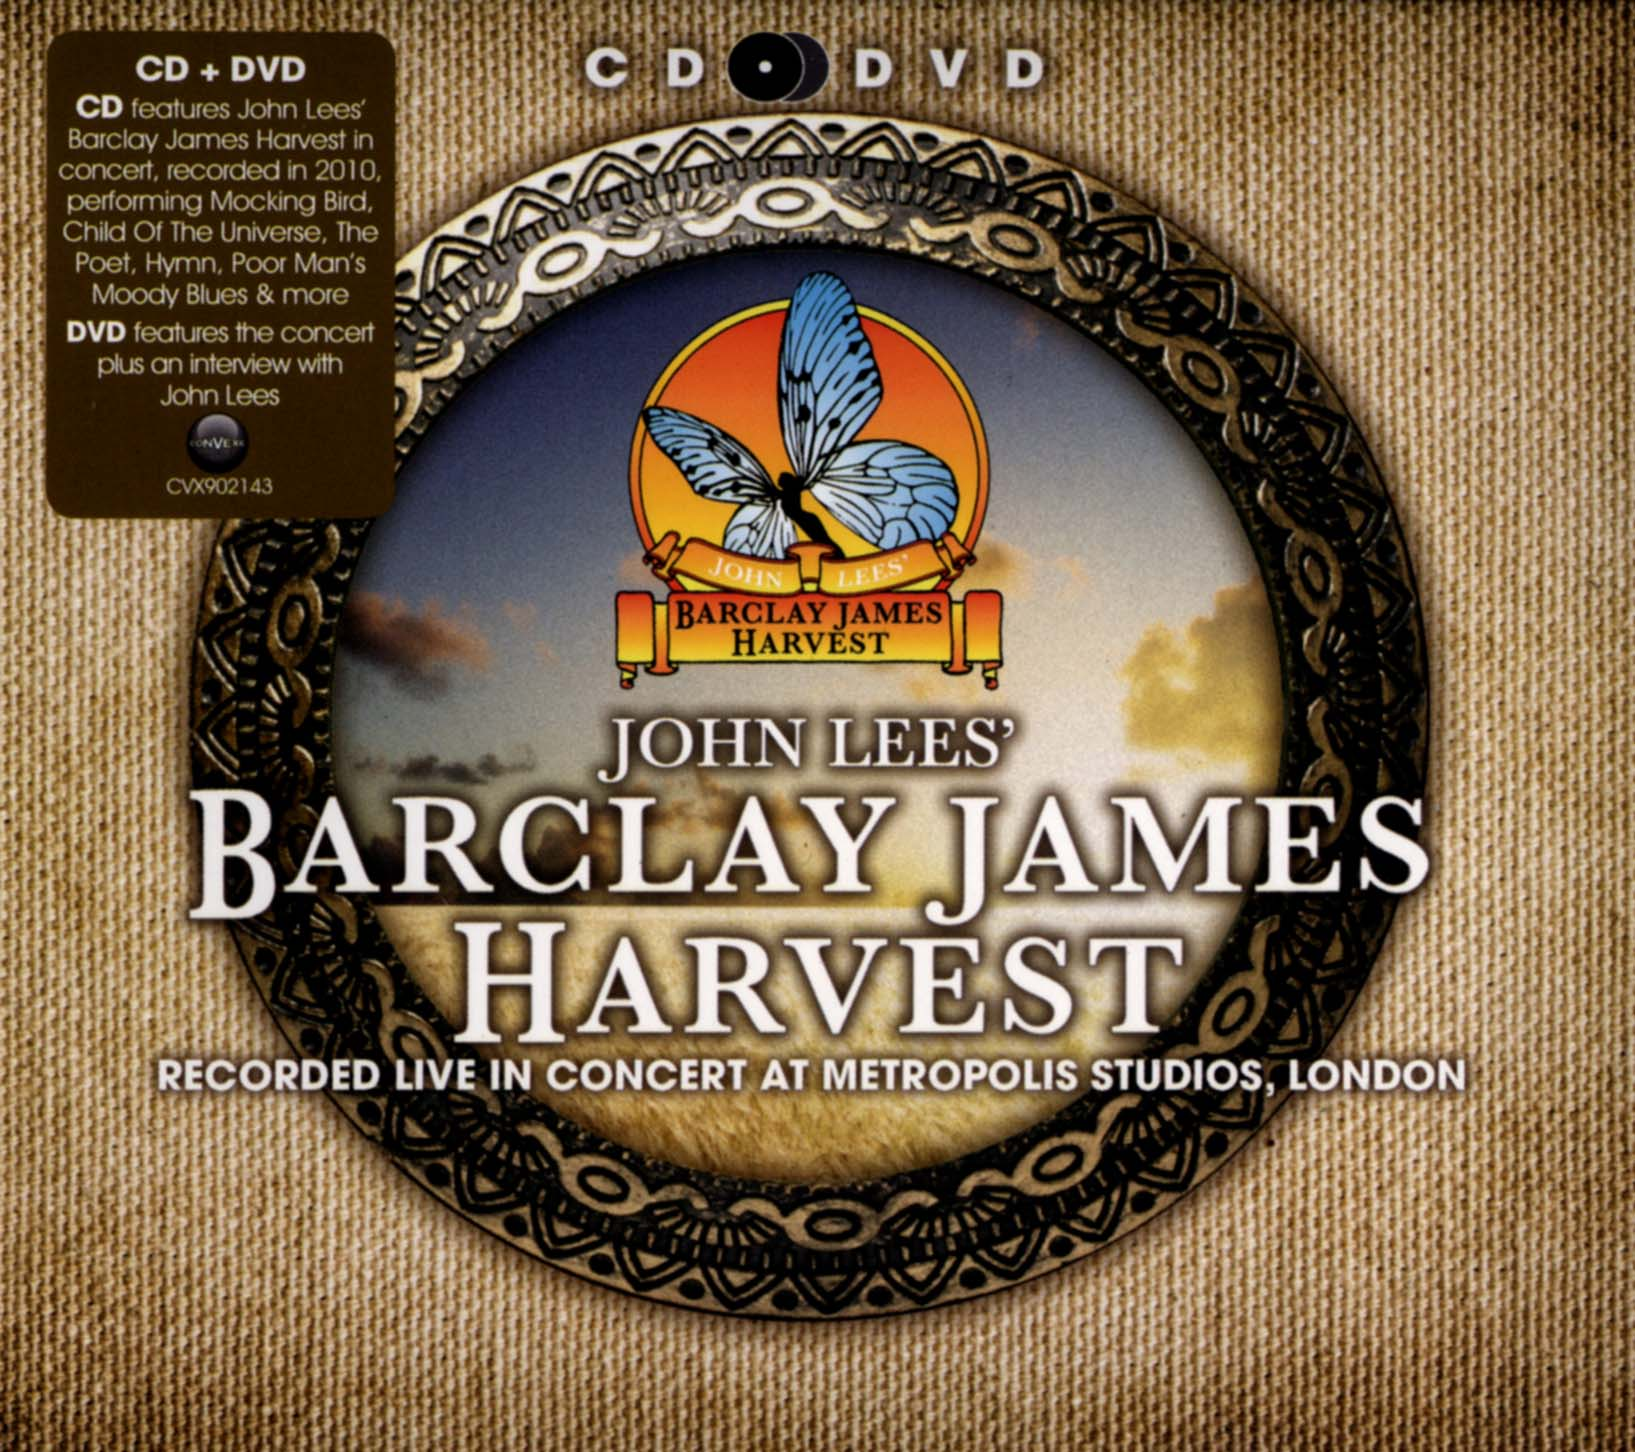 John Lees' Barclay James Harvest: Recorded Live in Concert at Metropolis Studios, London